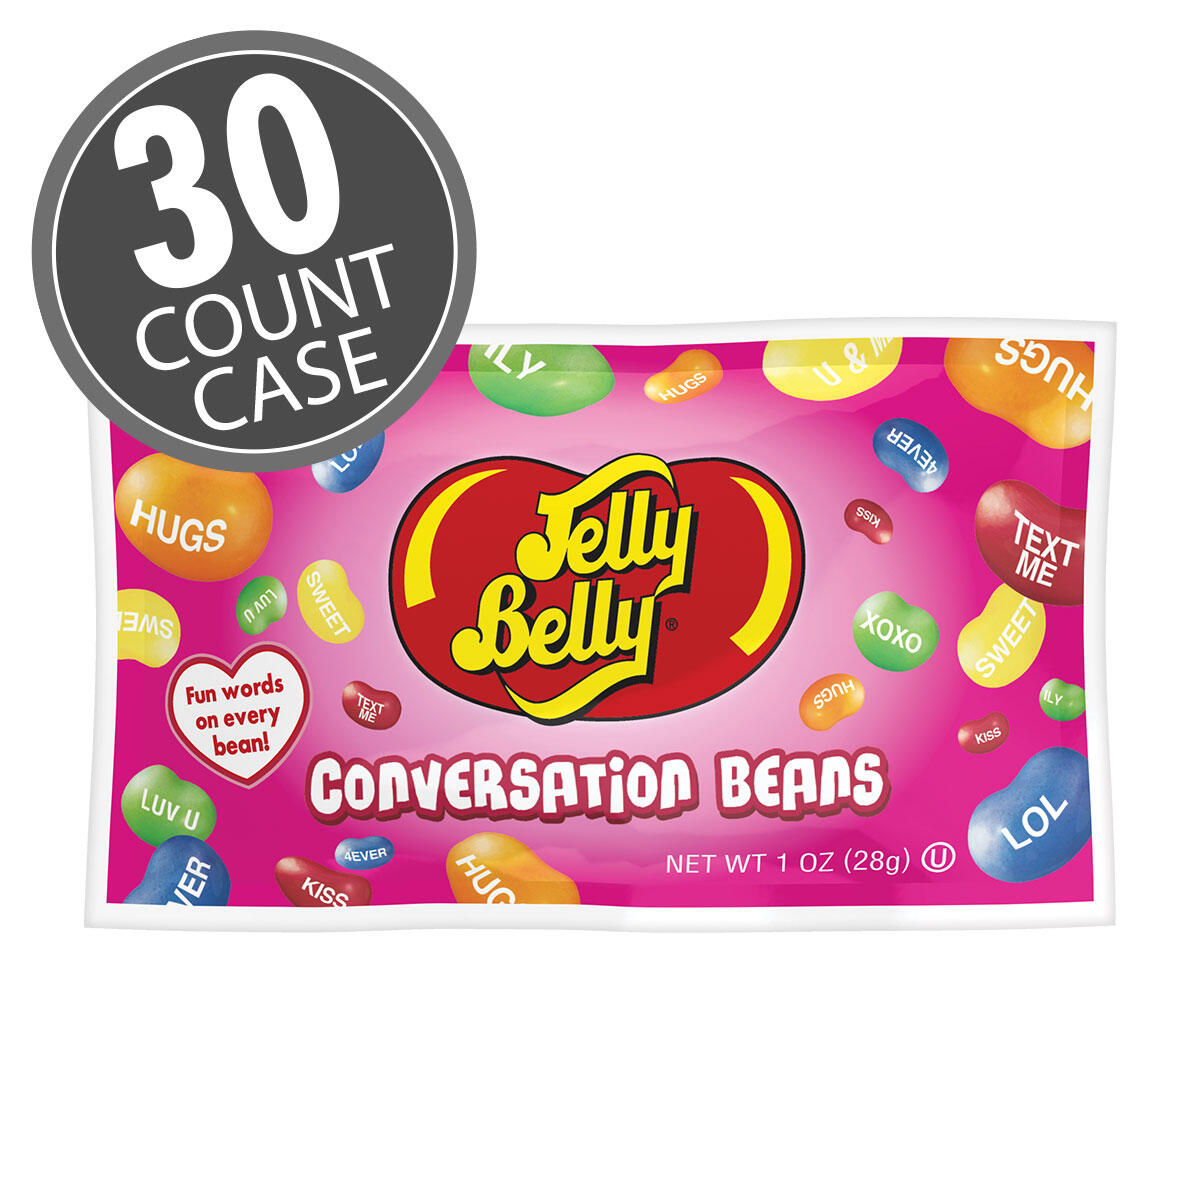 Jelly Belly Conversation Beans® 1 oz Bag - 30-Count Case